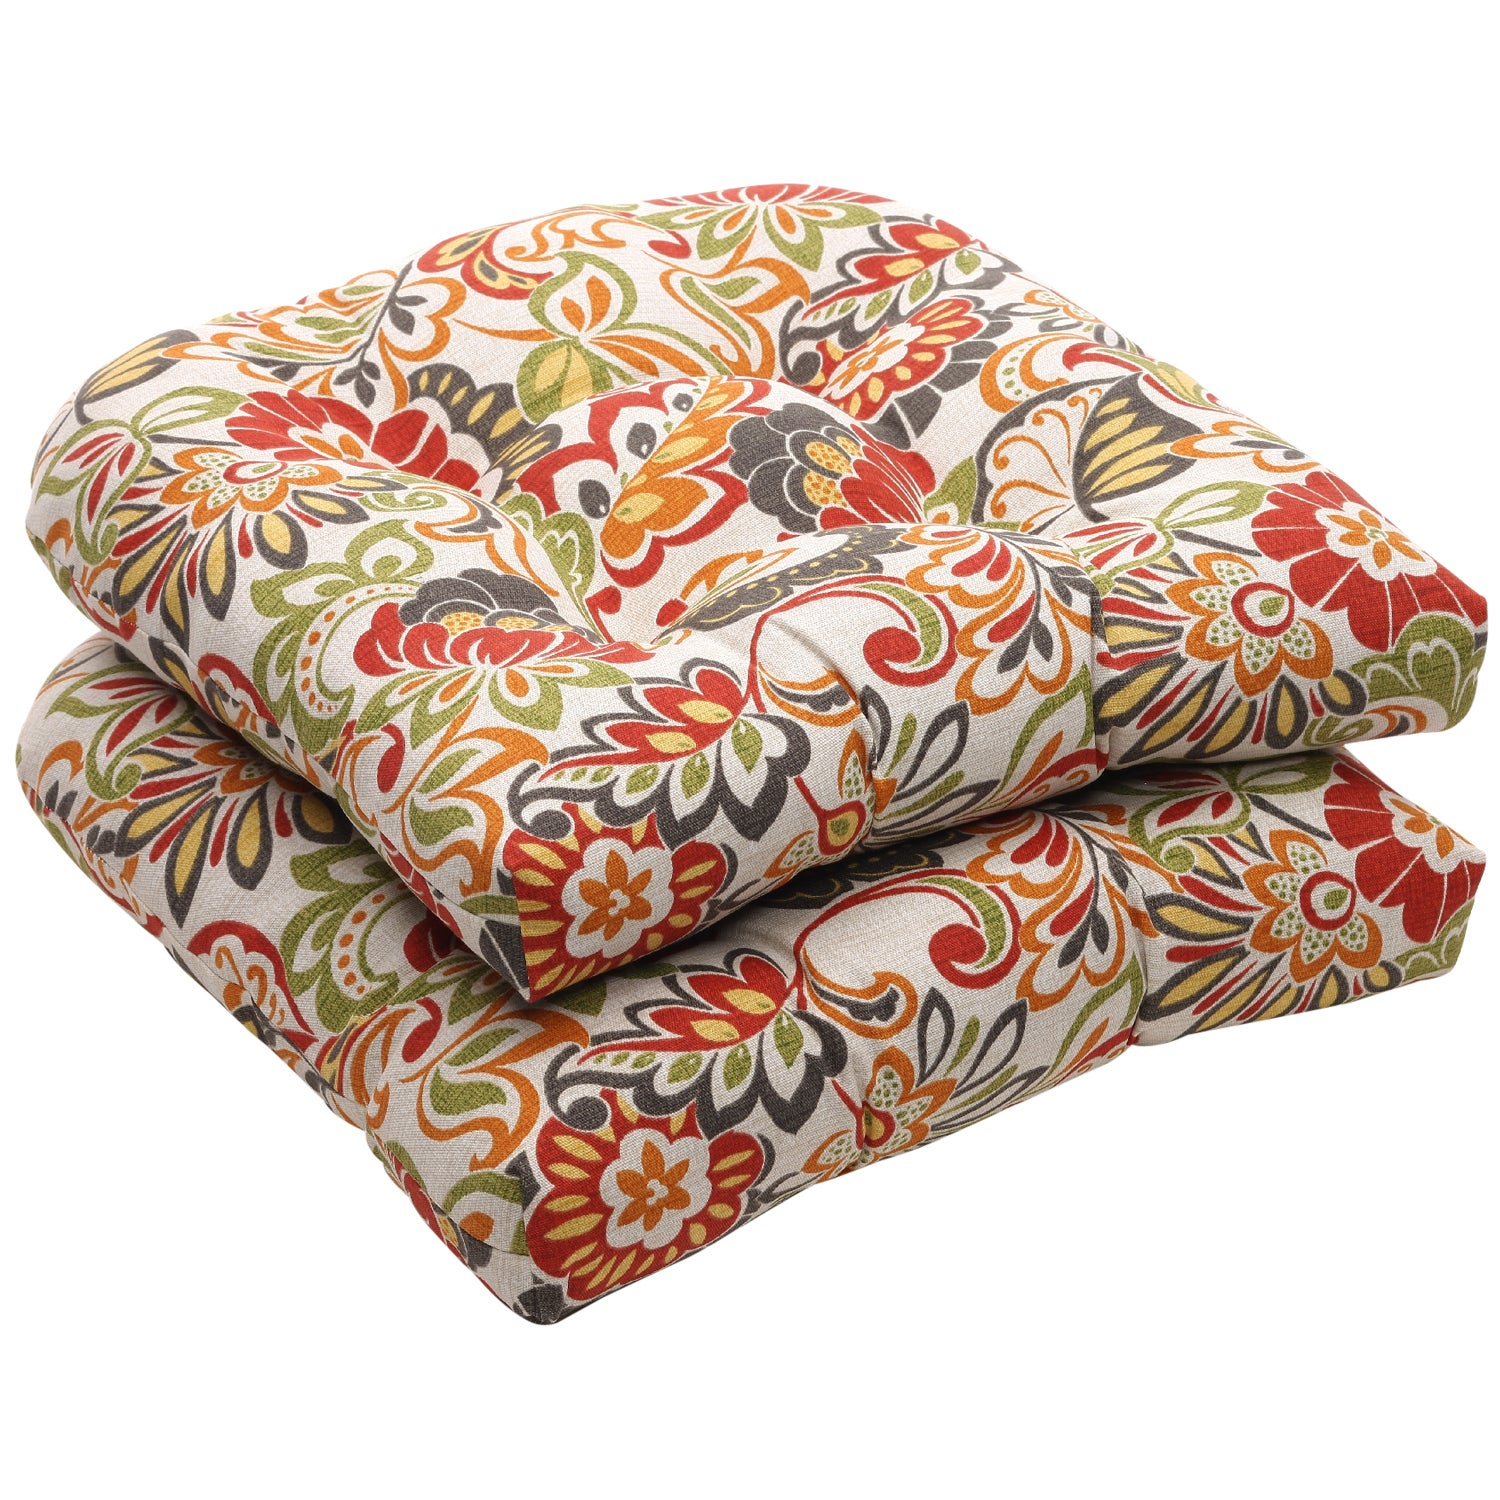 Outdoor Multicolored Floral Wicker Seat Cushions Set of 2  : Outdoor Multicolored Floral Wicker Seat Cushions Set of 2 L14095781 from ebay.com size 1500 x 1500 jpeg 570kB